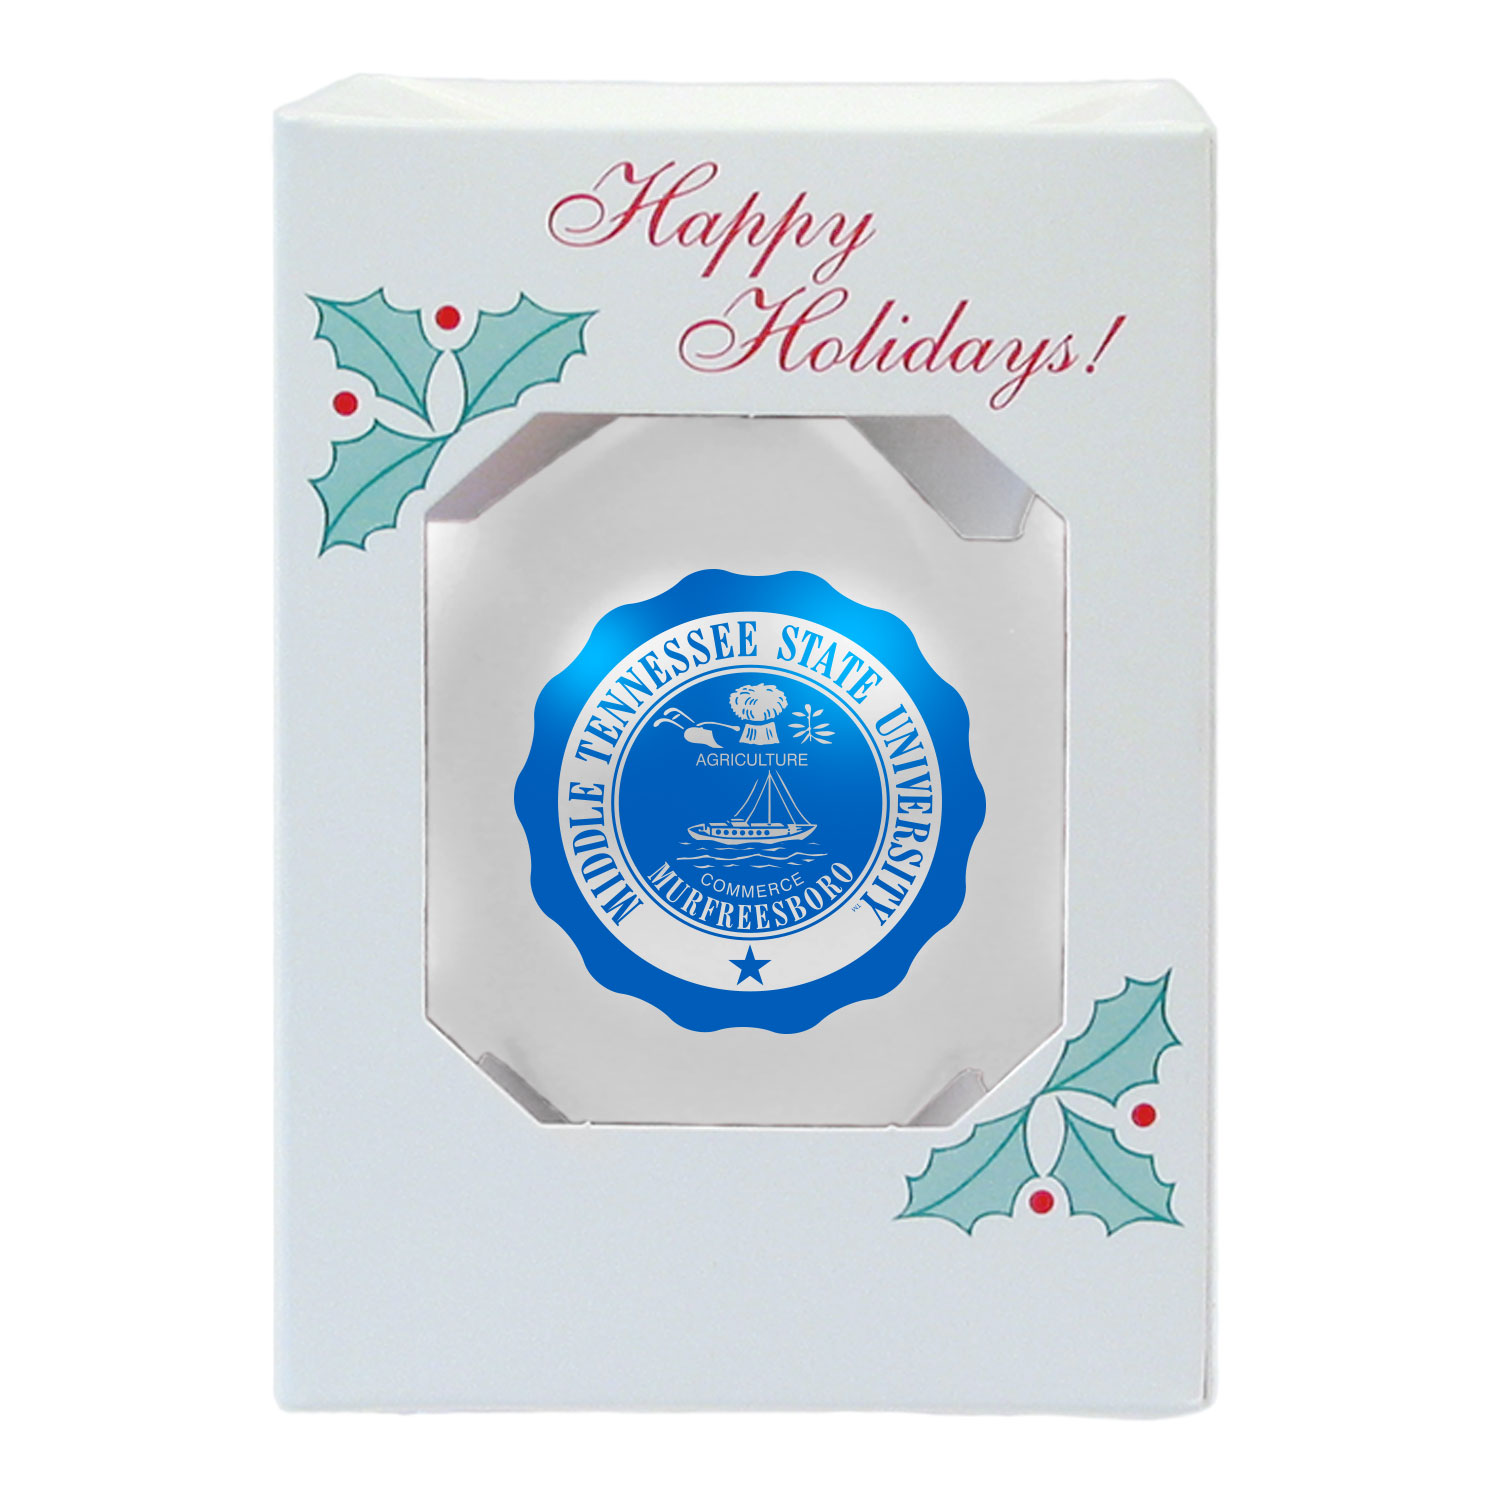 MTSU Seal Shatterproof Ornament